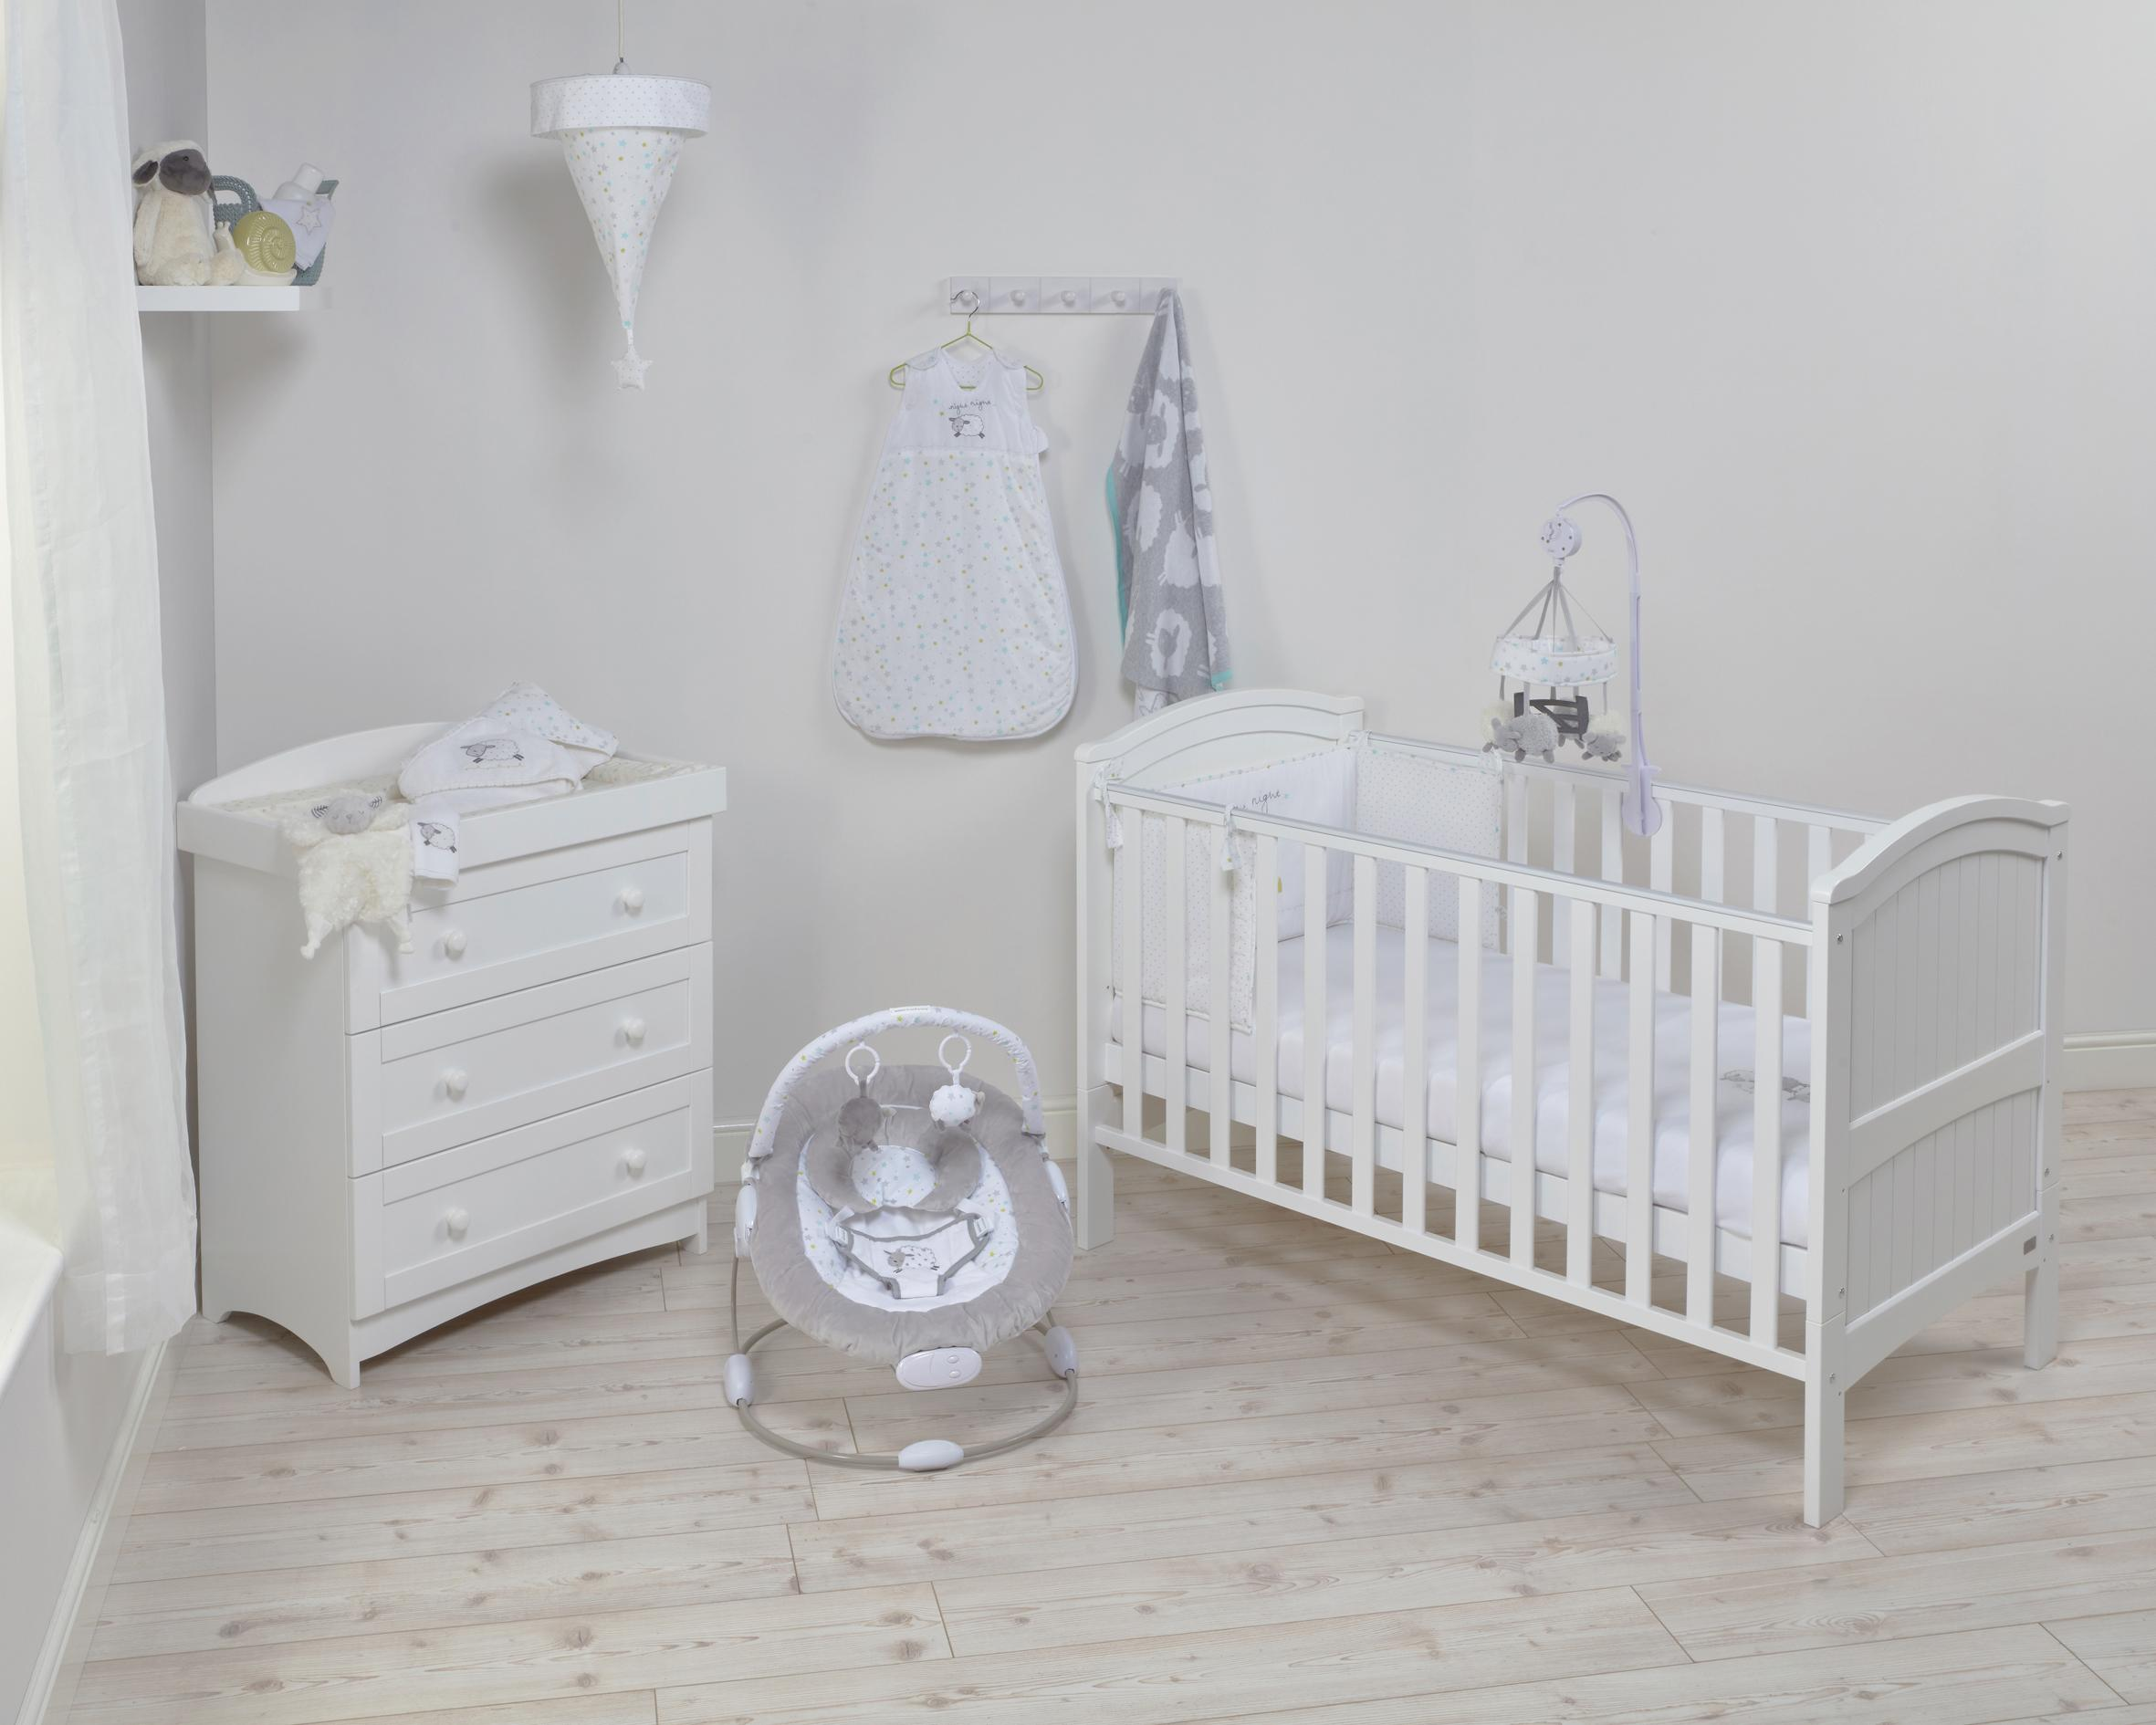 official photos 7d813 e8148 Henley White Wardrobe, Drawers and Cot Bed Nursery Room Set